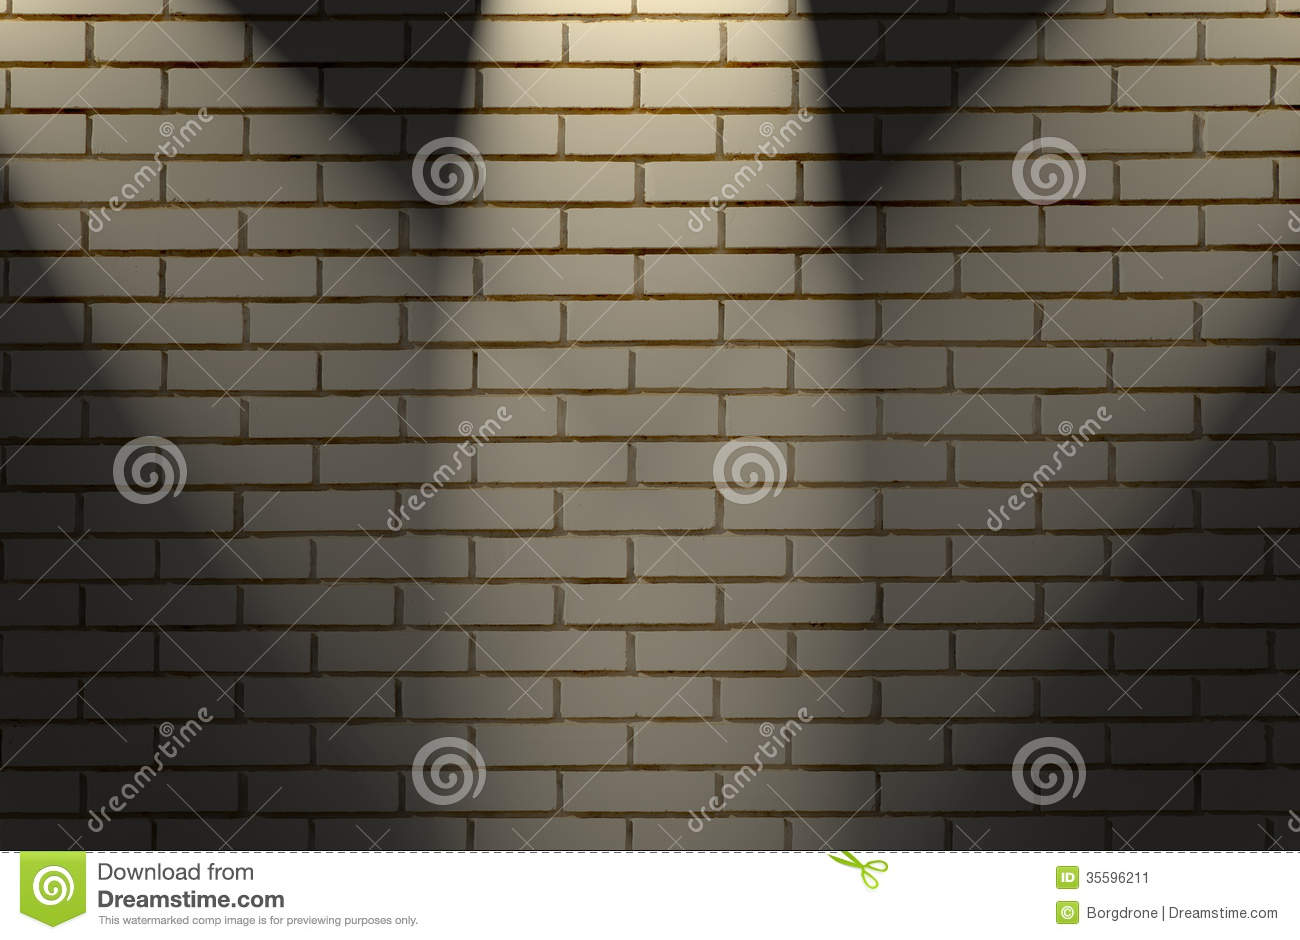 White Brick Wall Lights : White Brick Wall With Three Light Stock Image - Image: 35596211